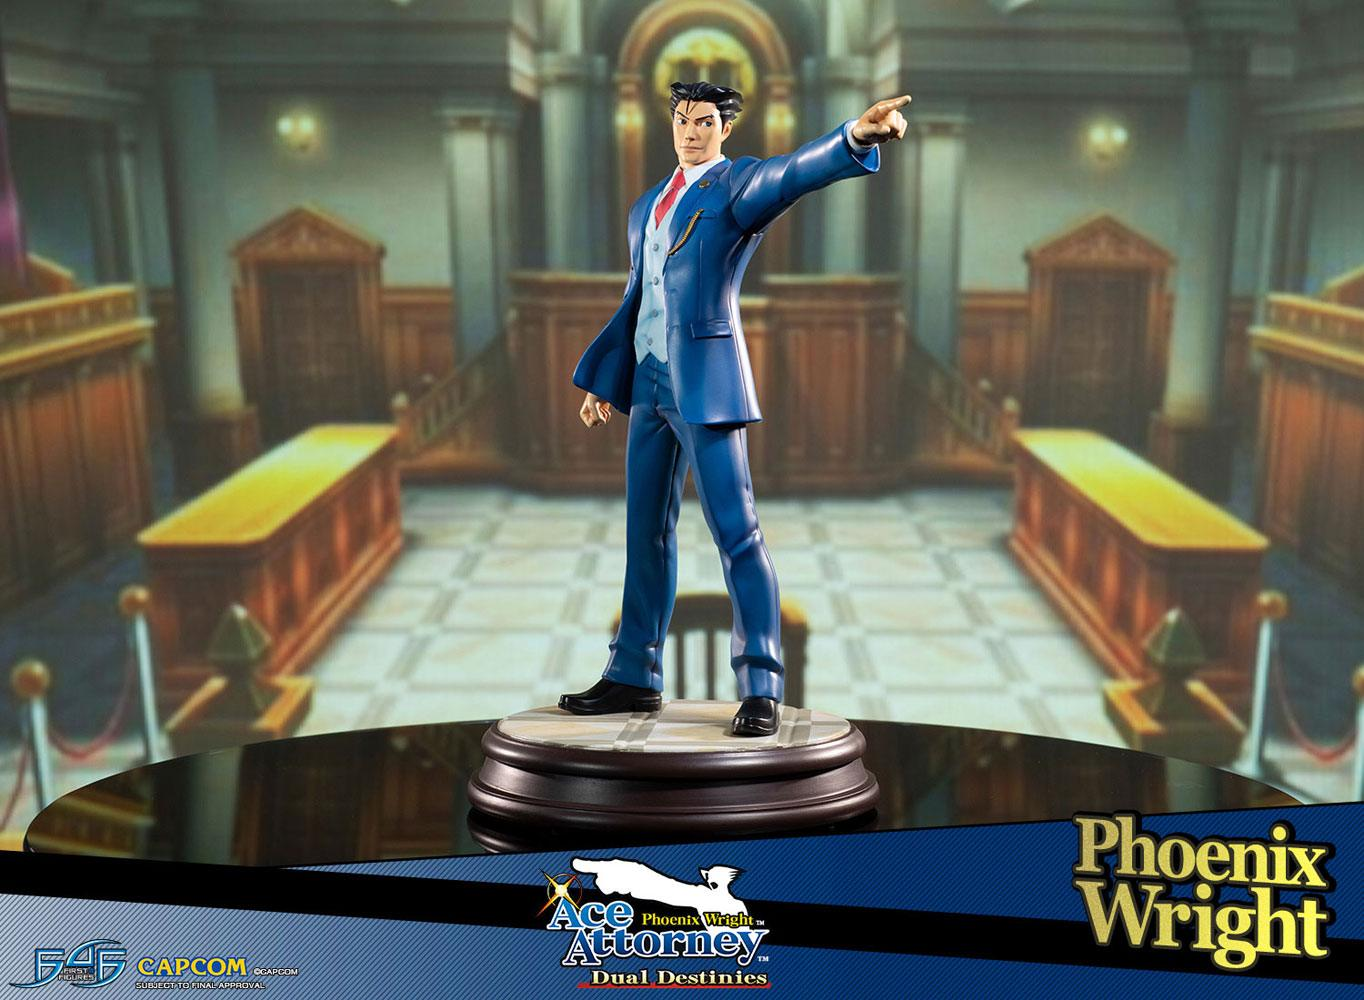 Phoenix Wright Ace Attorney Dual Destinies Statue 1/6 Phoenix Wright 34 cm